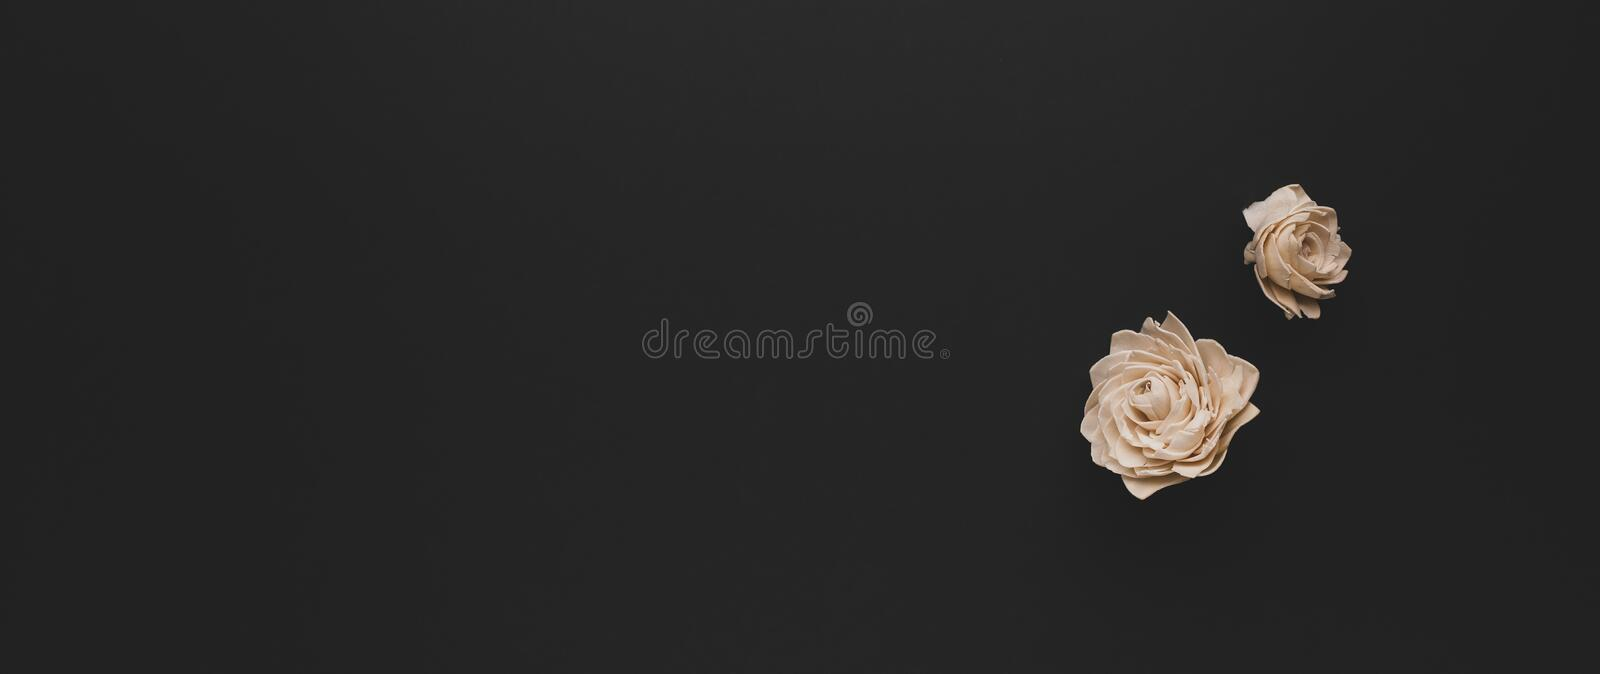 Autumn composition with dried white roses on dark background. Flat lay copy space royalty free stock images